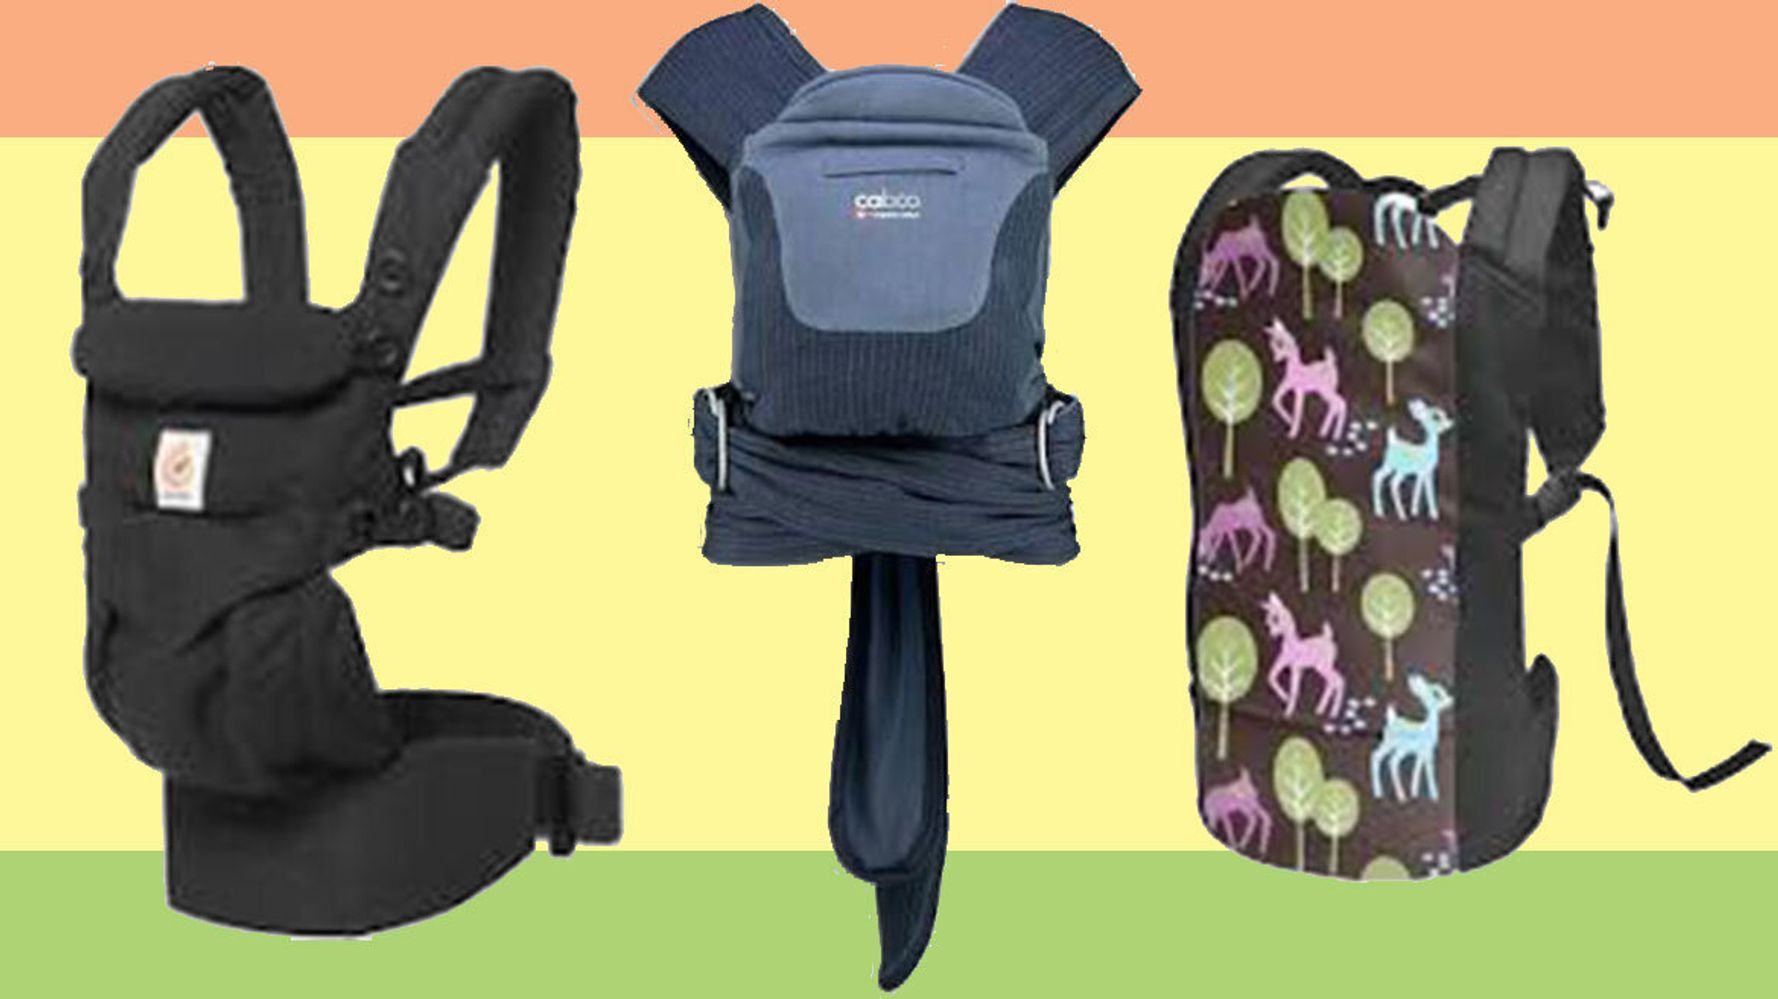 Best Baby Carriers, Slings And Wraps To Keep Your Bundle Of Joy Snug and Your Hands Free